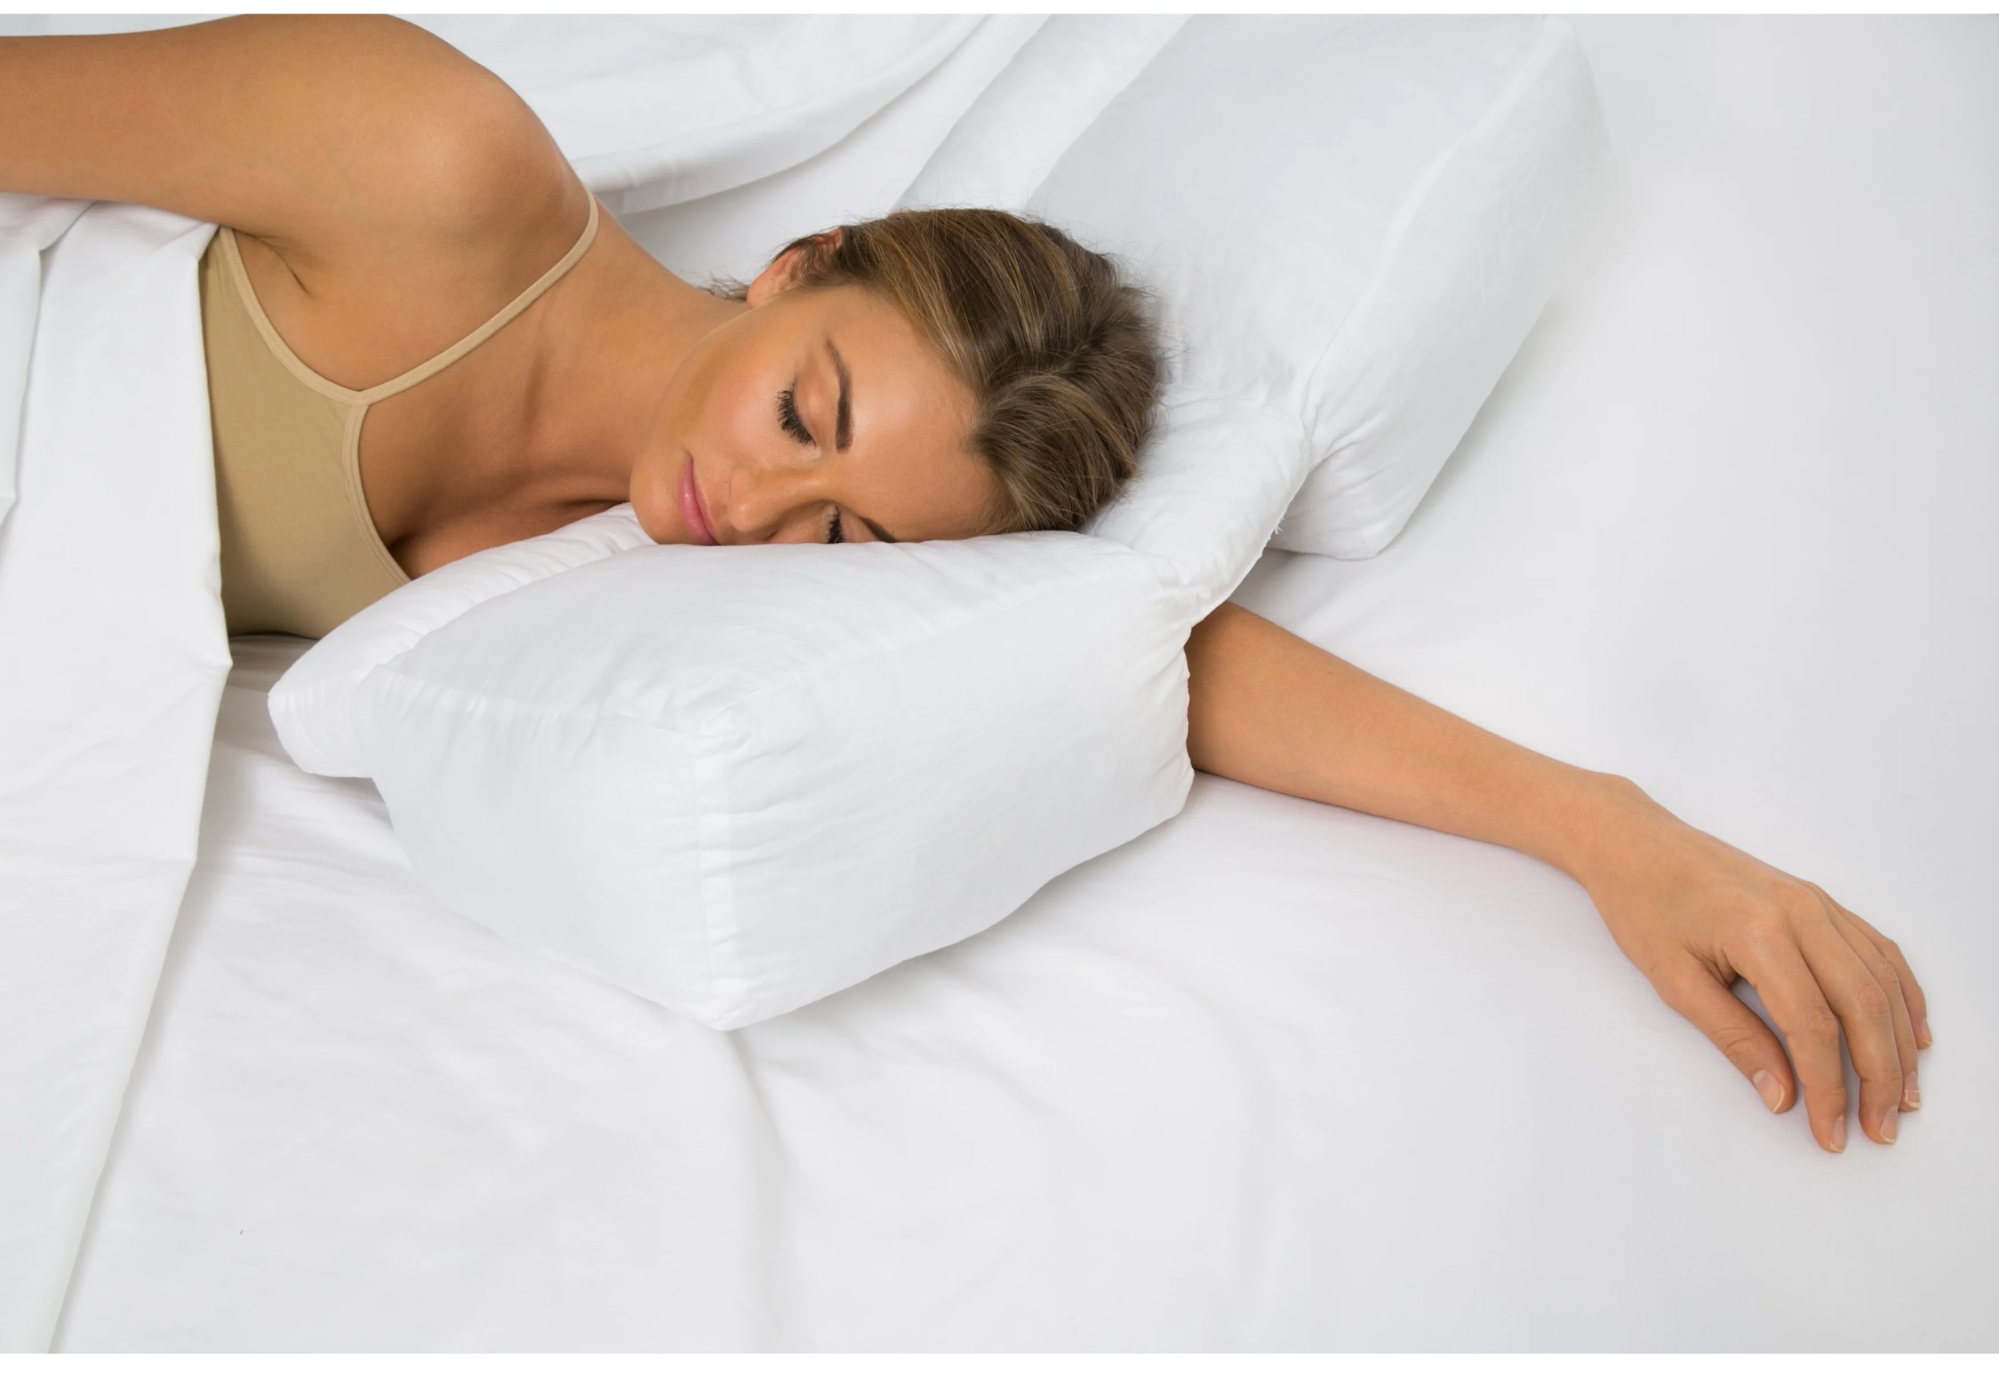 Best Sleep Solutions for Neck and Shoulder Pain by Dr. Chandra Sheckar, One of the best-dislocated shoulder surgeon in Hyderabad